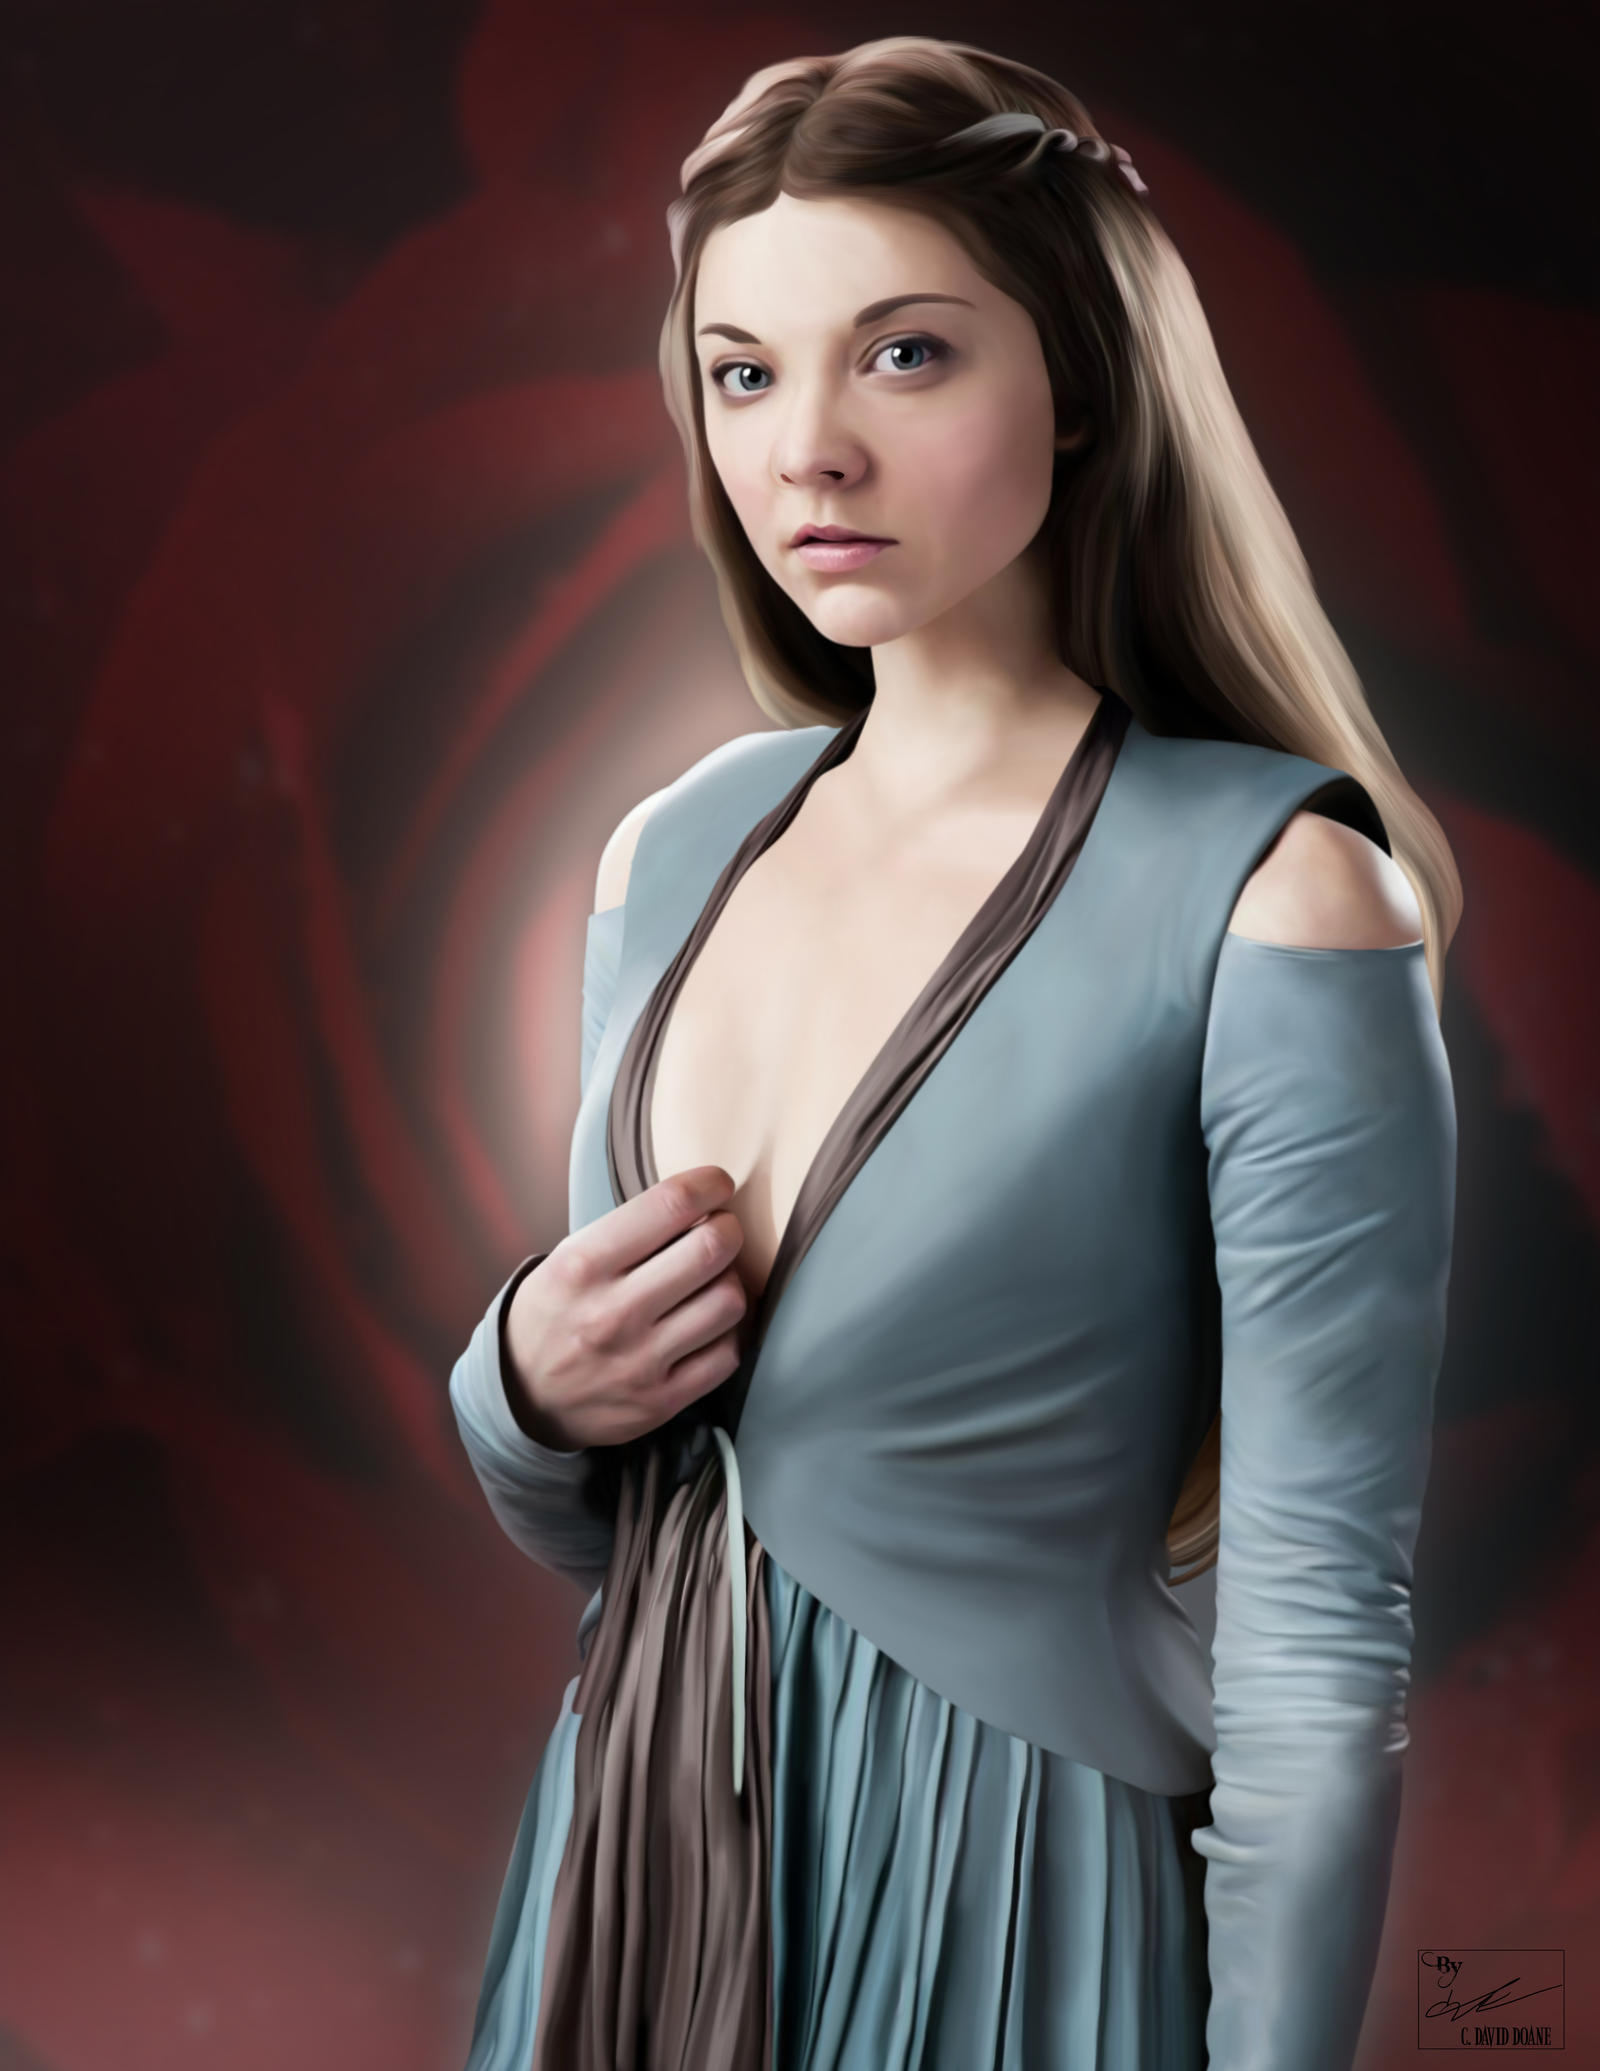 Esme Bianco Hot throughout wallpaper army: esme bianco pictures and wallpapers